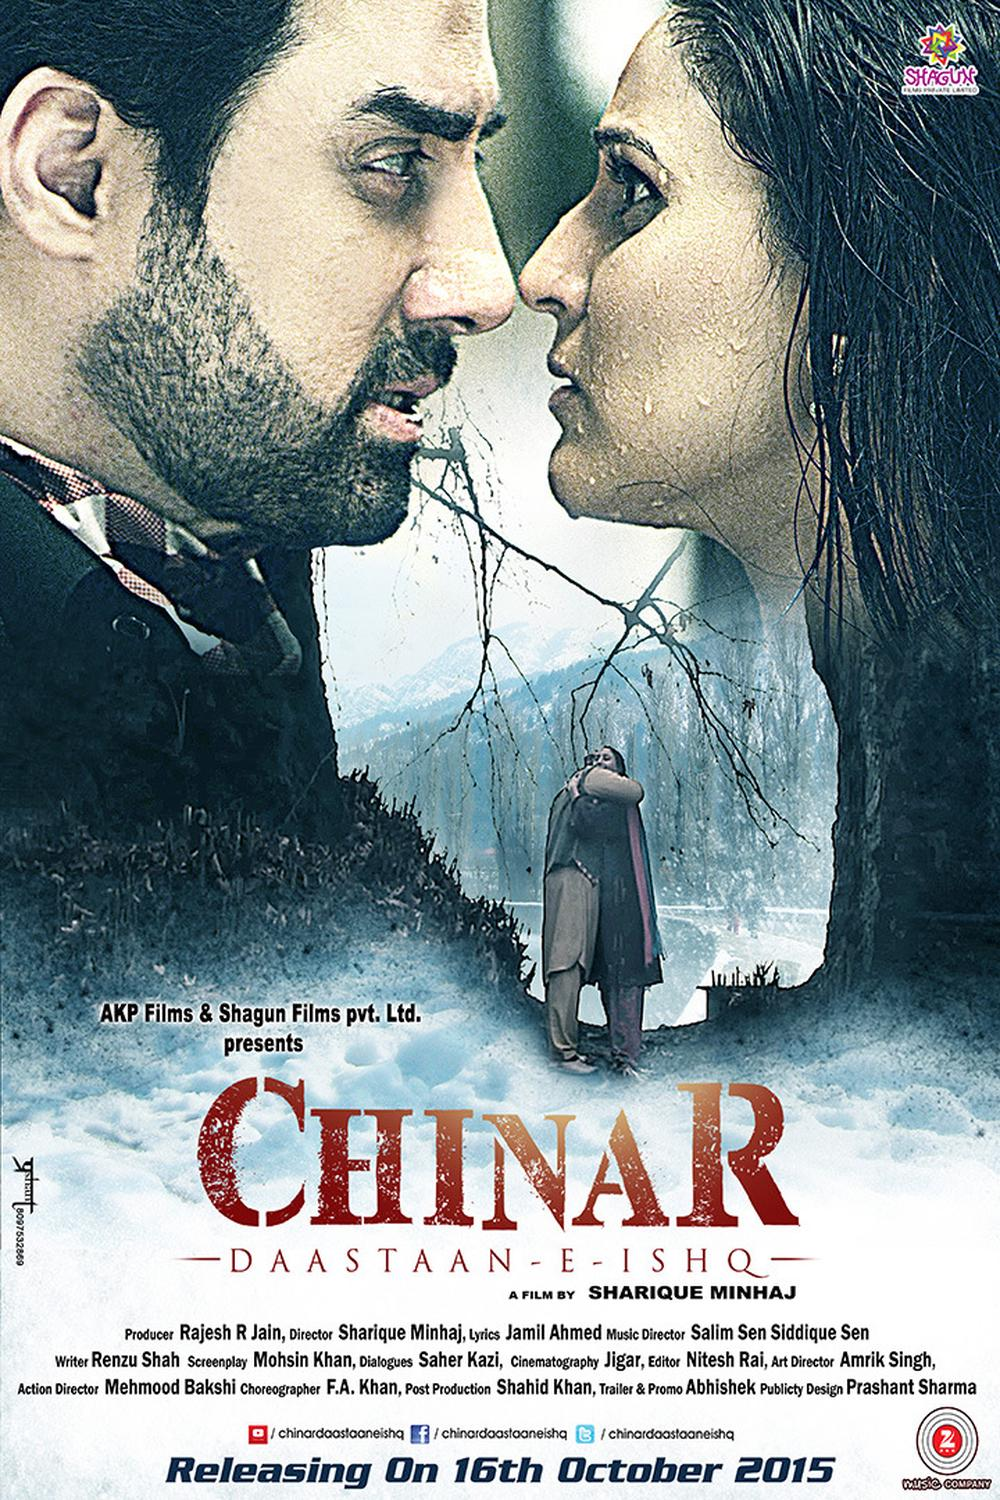 Chinar Daastaan-E-Ishq Movie Review Hindi